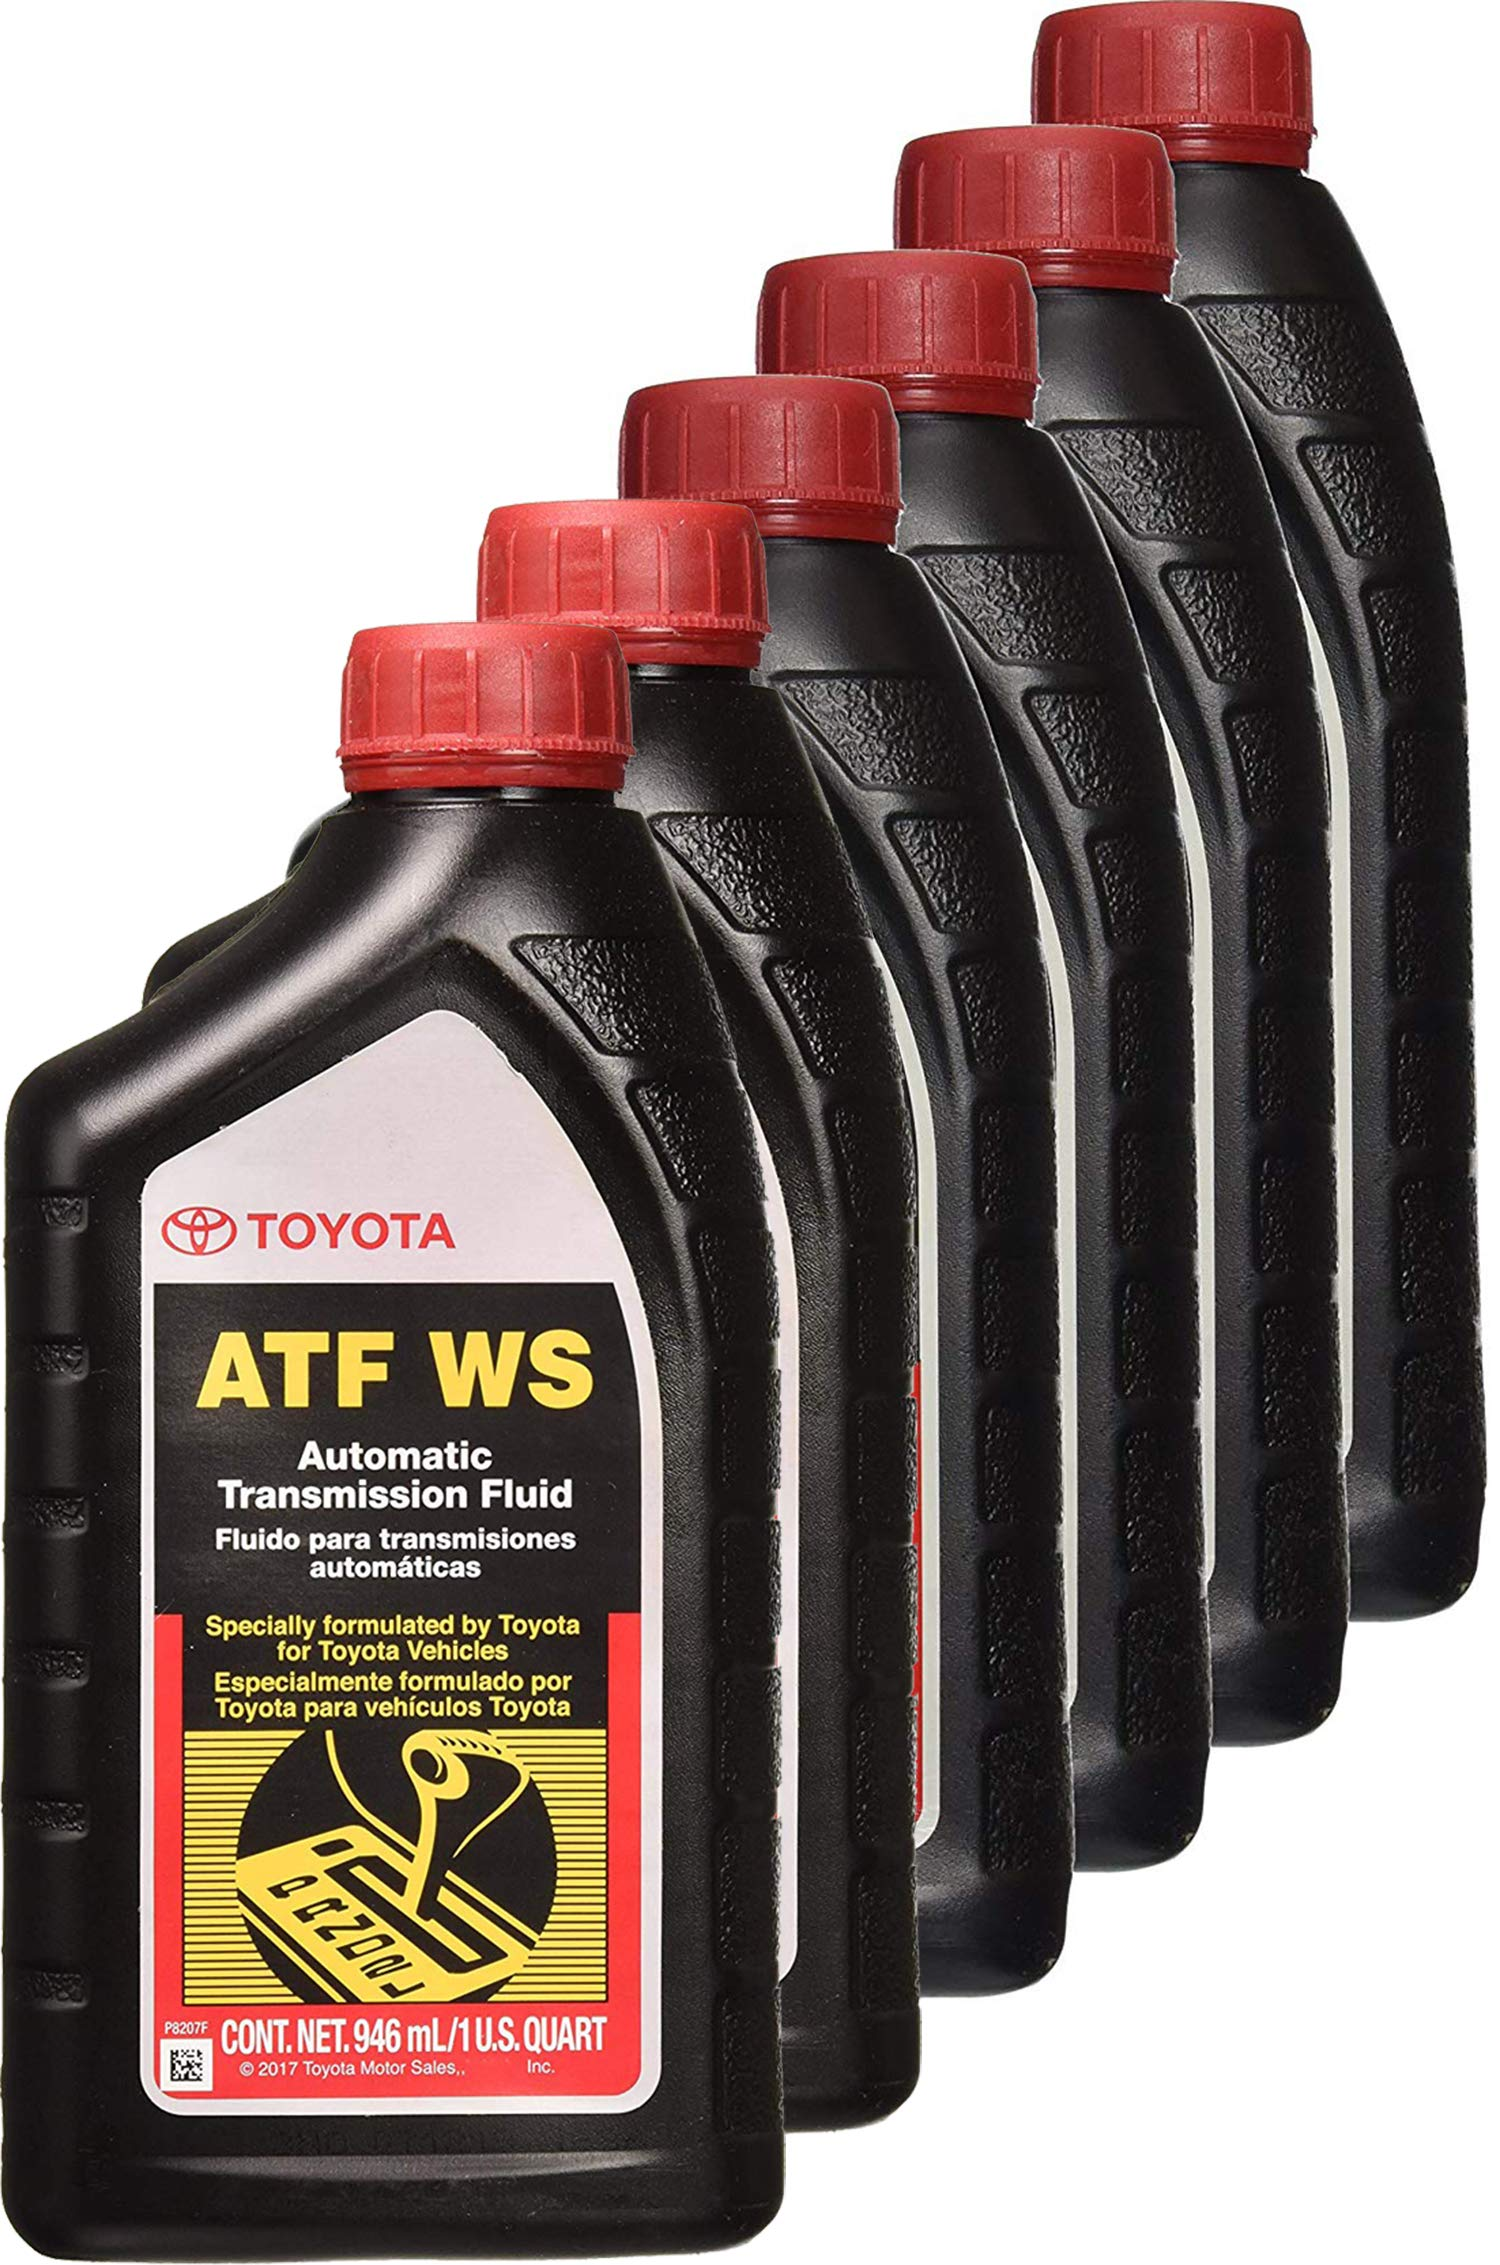 Toyota 6 Pack 00289-ATFWS Automatic Transmission Fluid, 192 Ounces, 6 Pack, 192 Ounces, 6 Pack by TOYOTA